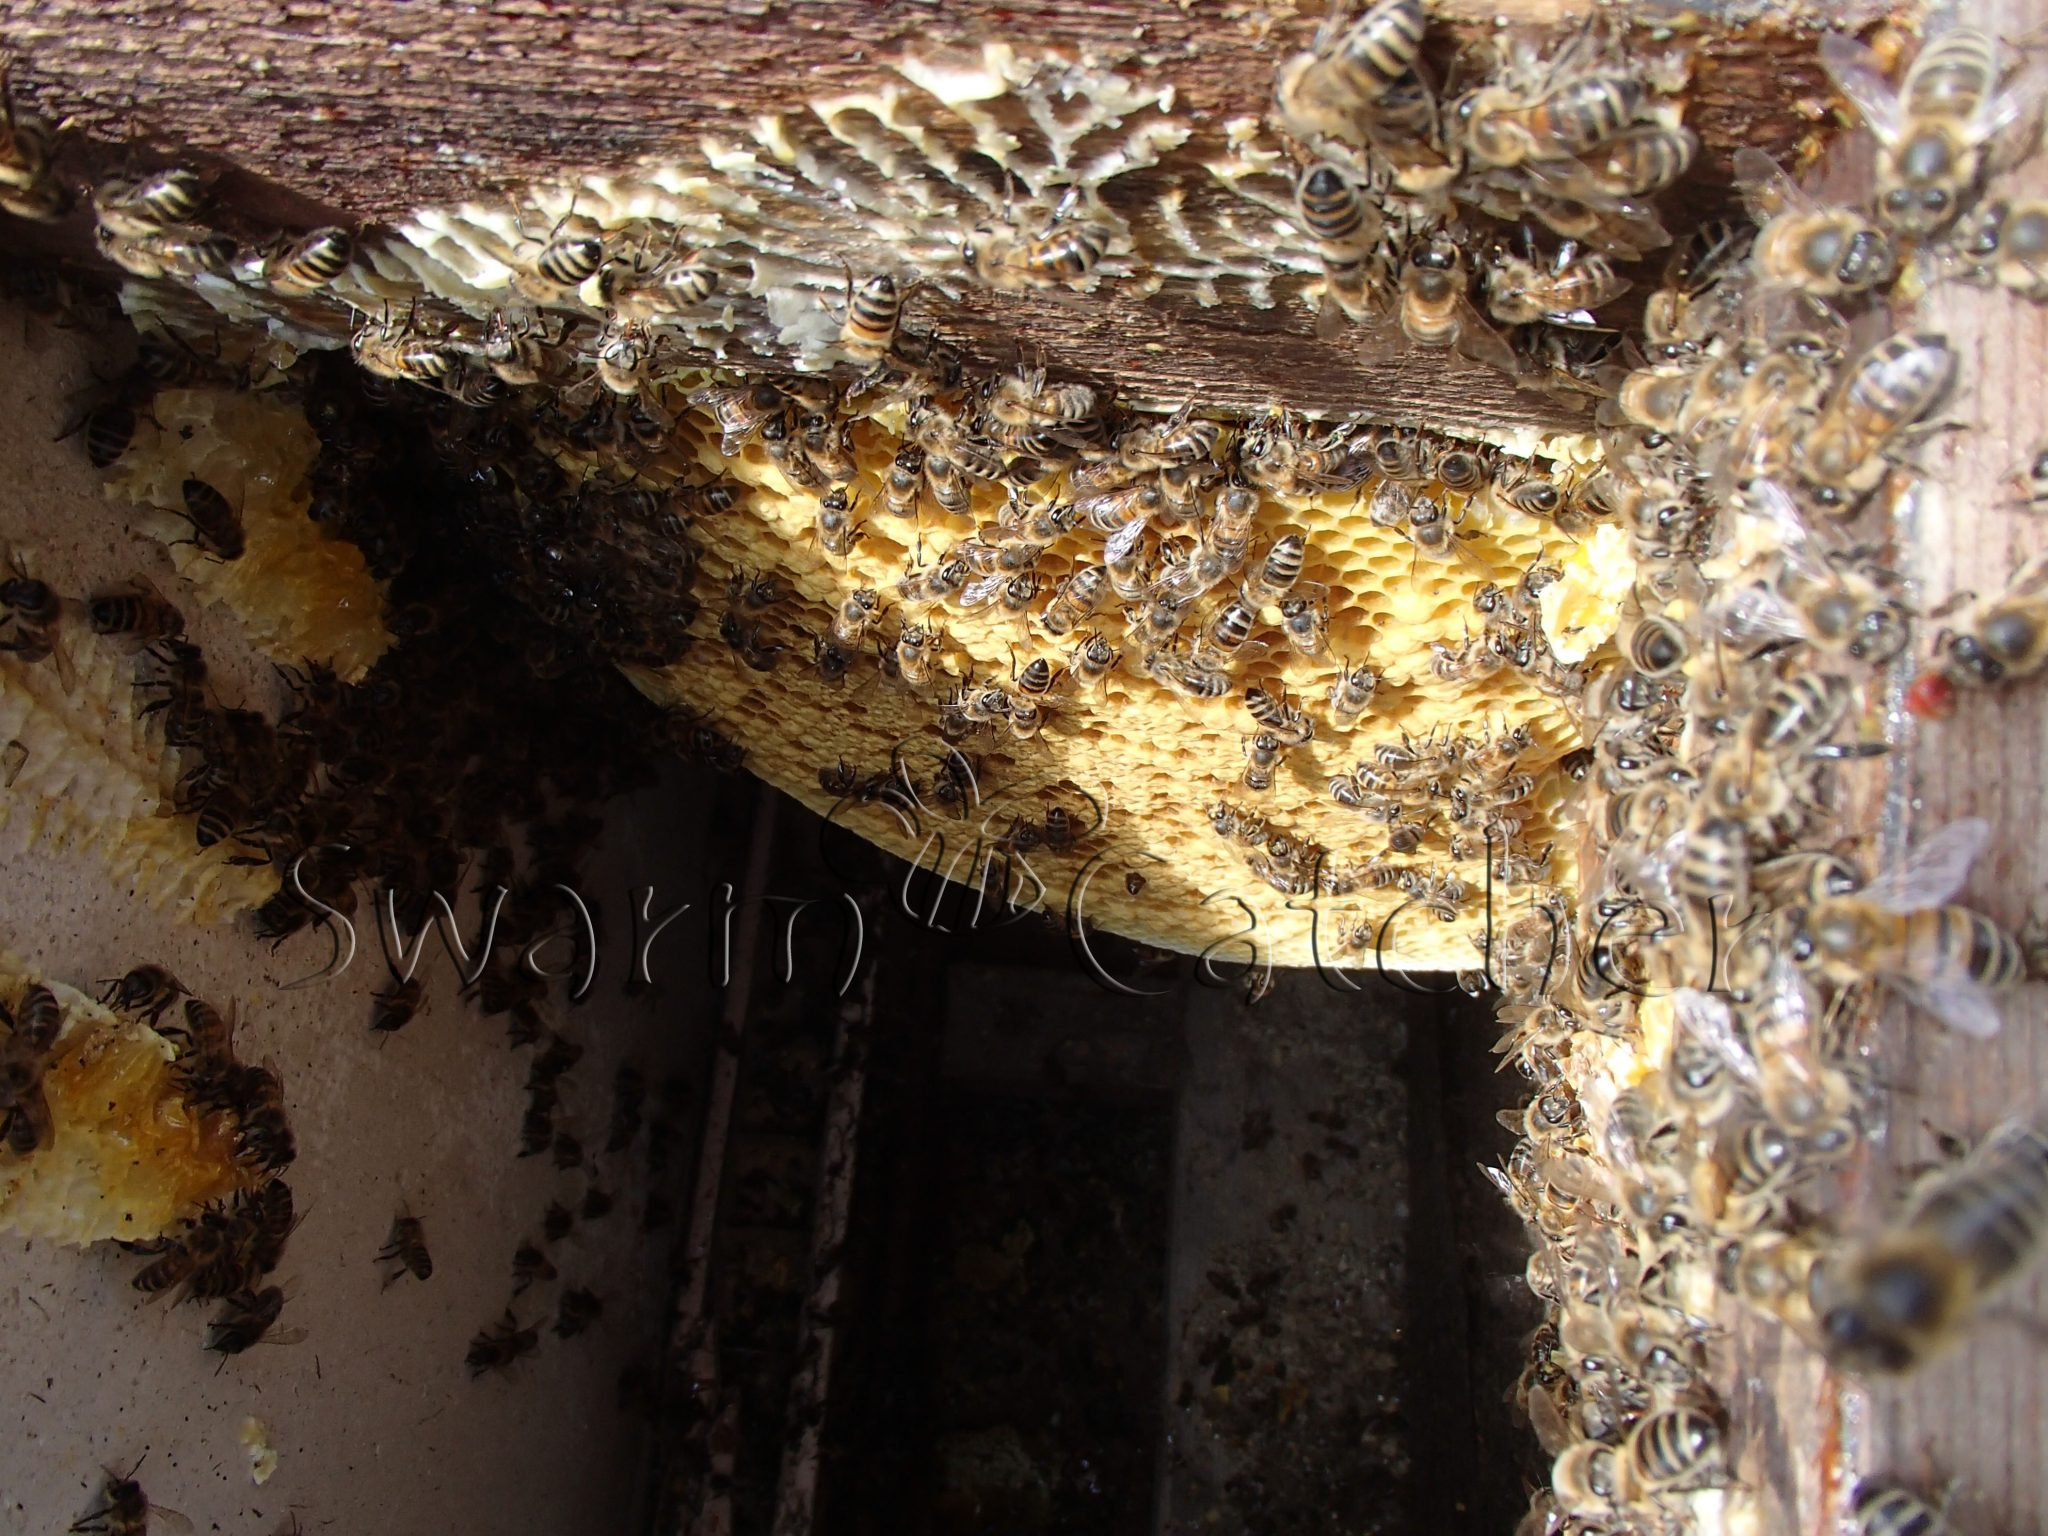 Bee Rescue and Conservation